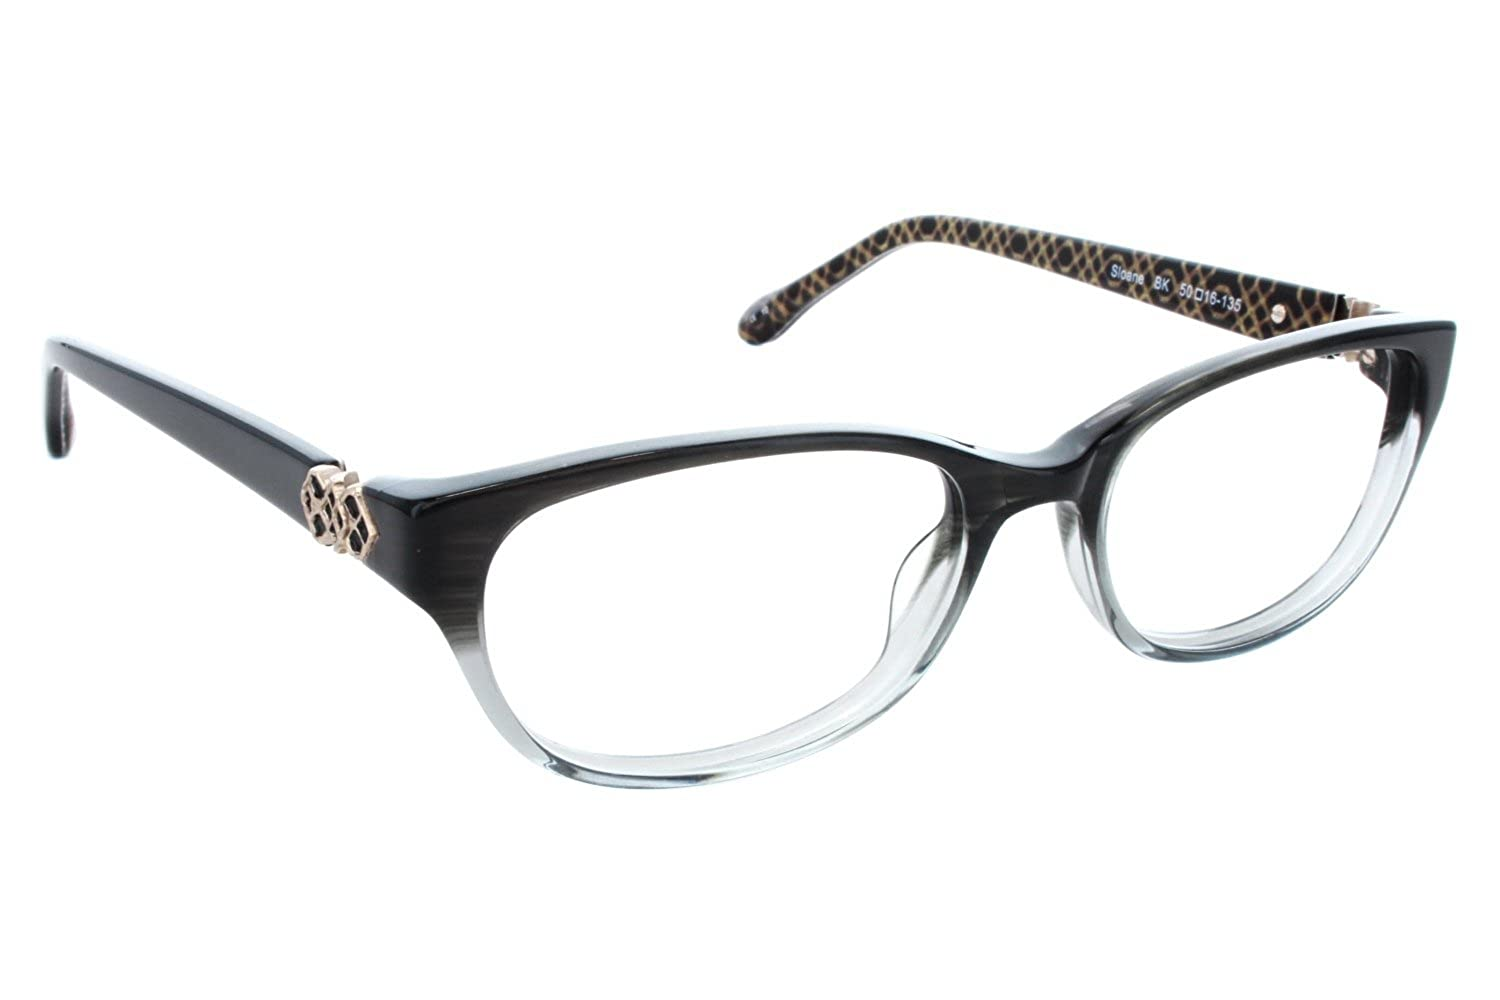 3ef2b536a39 LILLY PULITZER Eyeglasses SLOANE Black Crystal 50MM at Amazon Women s  Clothing store